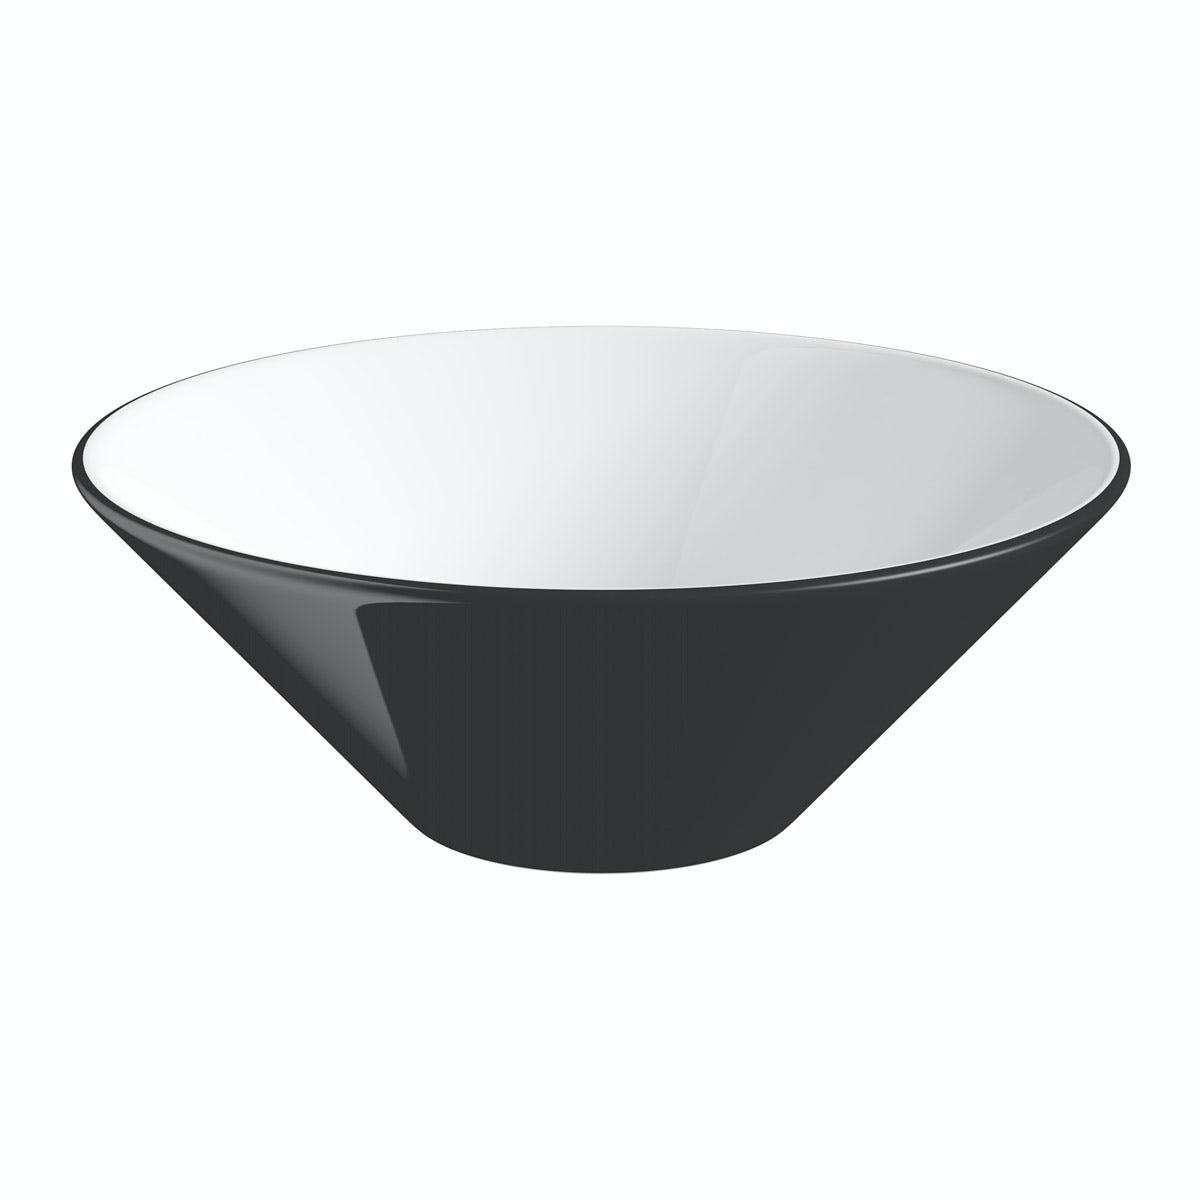 Orchard Caspian countertop basin 425mm